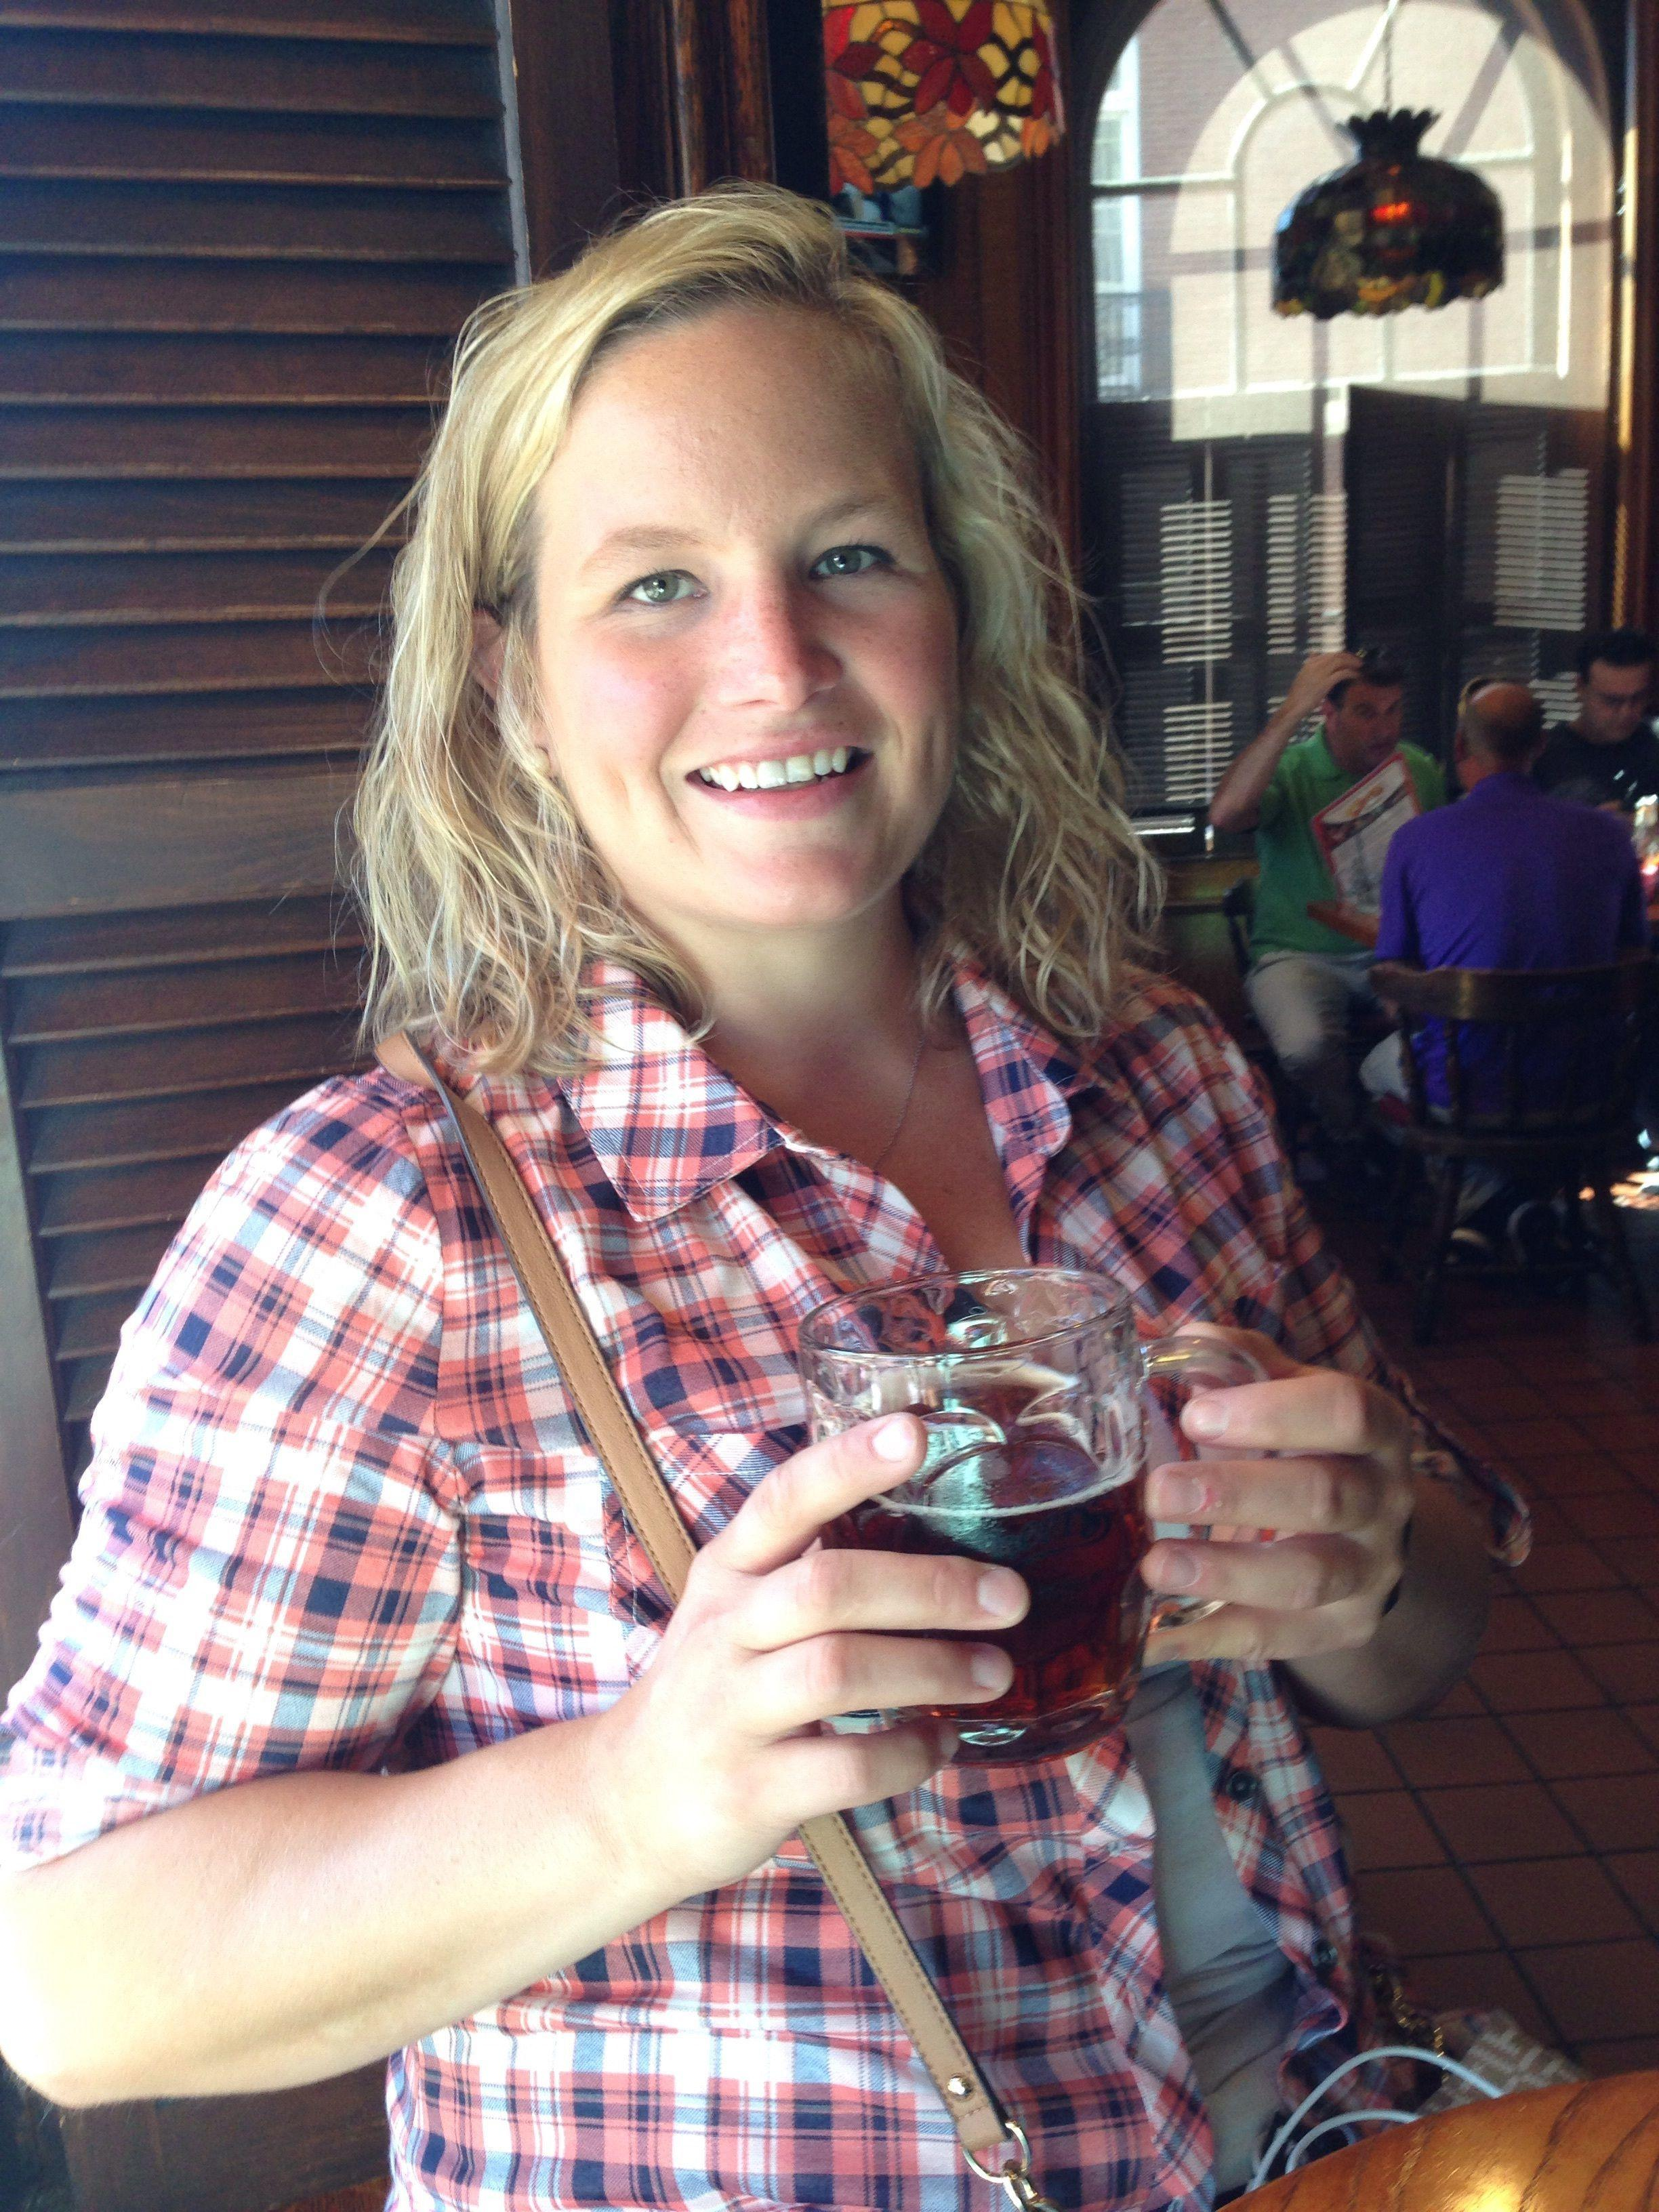 speed dating dubuque iowa Looking for food & drink events events in dubuque v-day speed dating i for austin singles 12 of 12 dubuque, ia food & drink events.